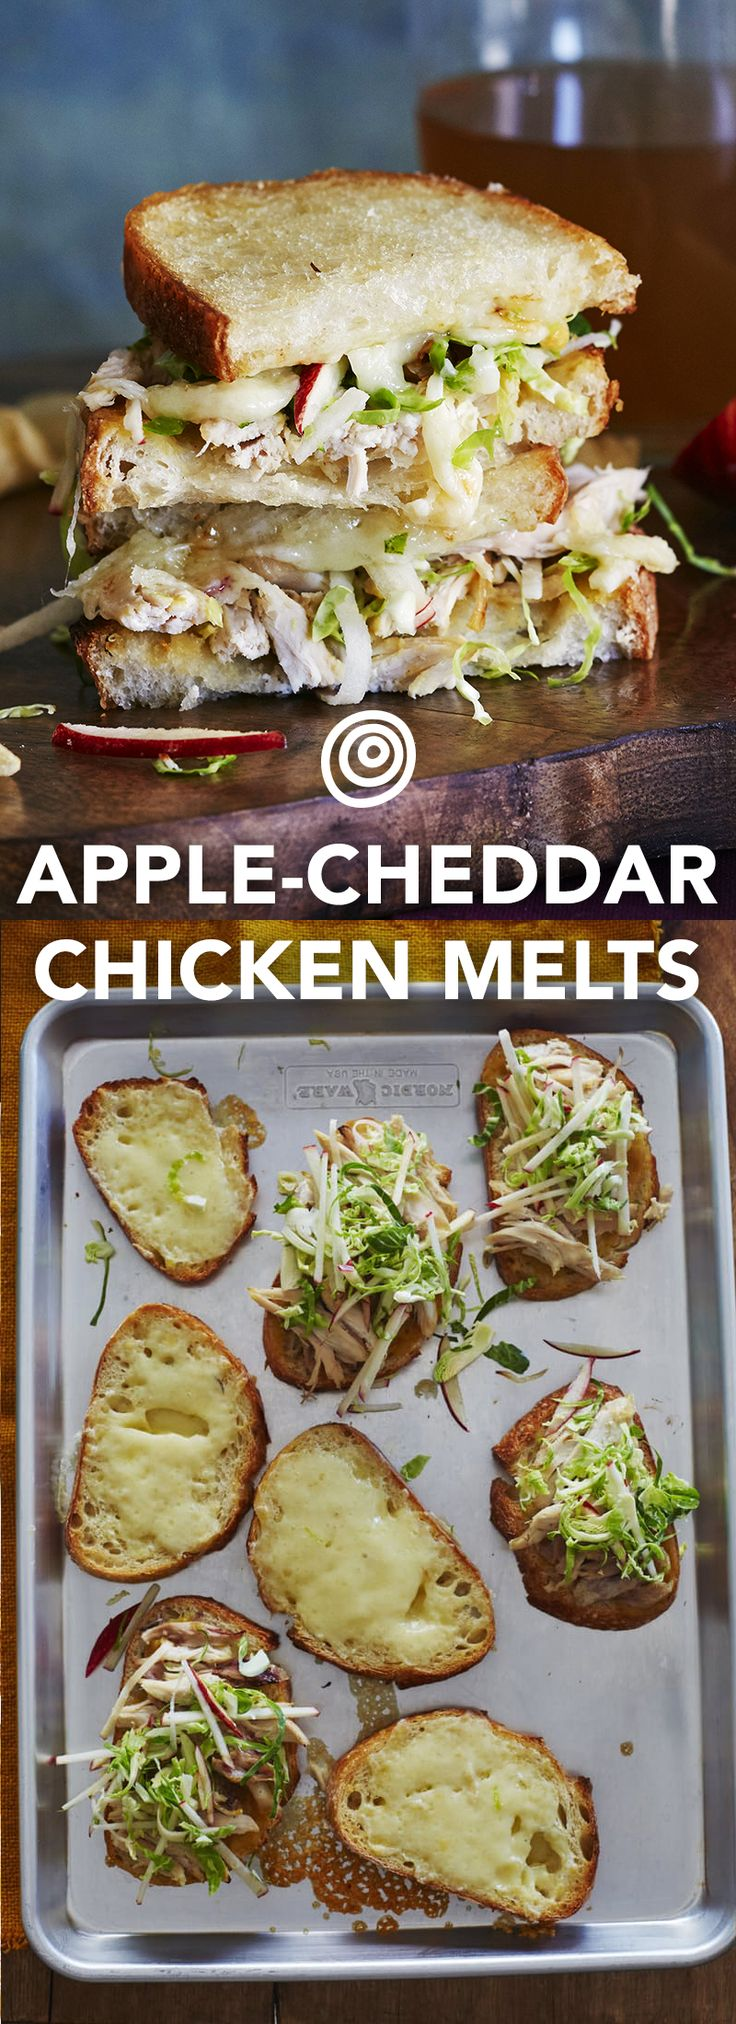 Apple, Cheddar & Chicken Melts Recipe. Add this to the top of your fall recipes and ideas list! This wonderful sheet pan meal is an easy way to serve up new autumn comfort foods for dinner - for a crowd even. You'll need apples, cheddar, rotisserie chicken, honey, brussels sprouts, lemon juice, and sourdough for these unique and delicious sandwiches.